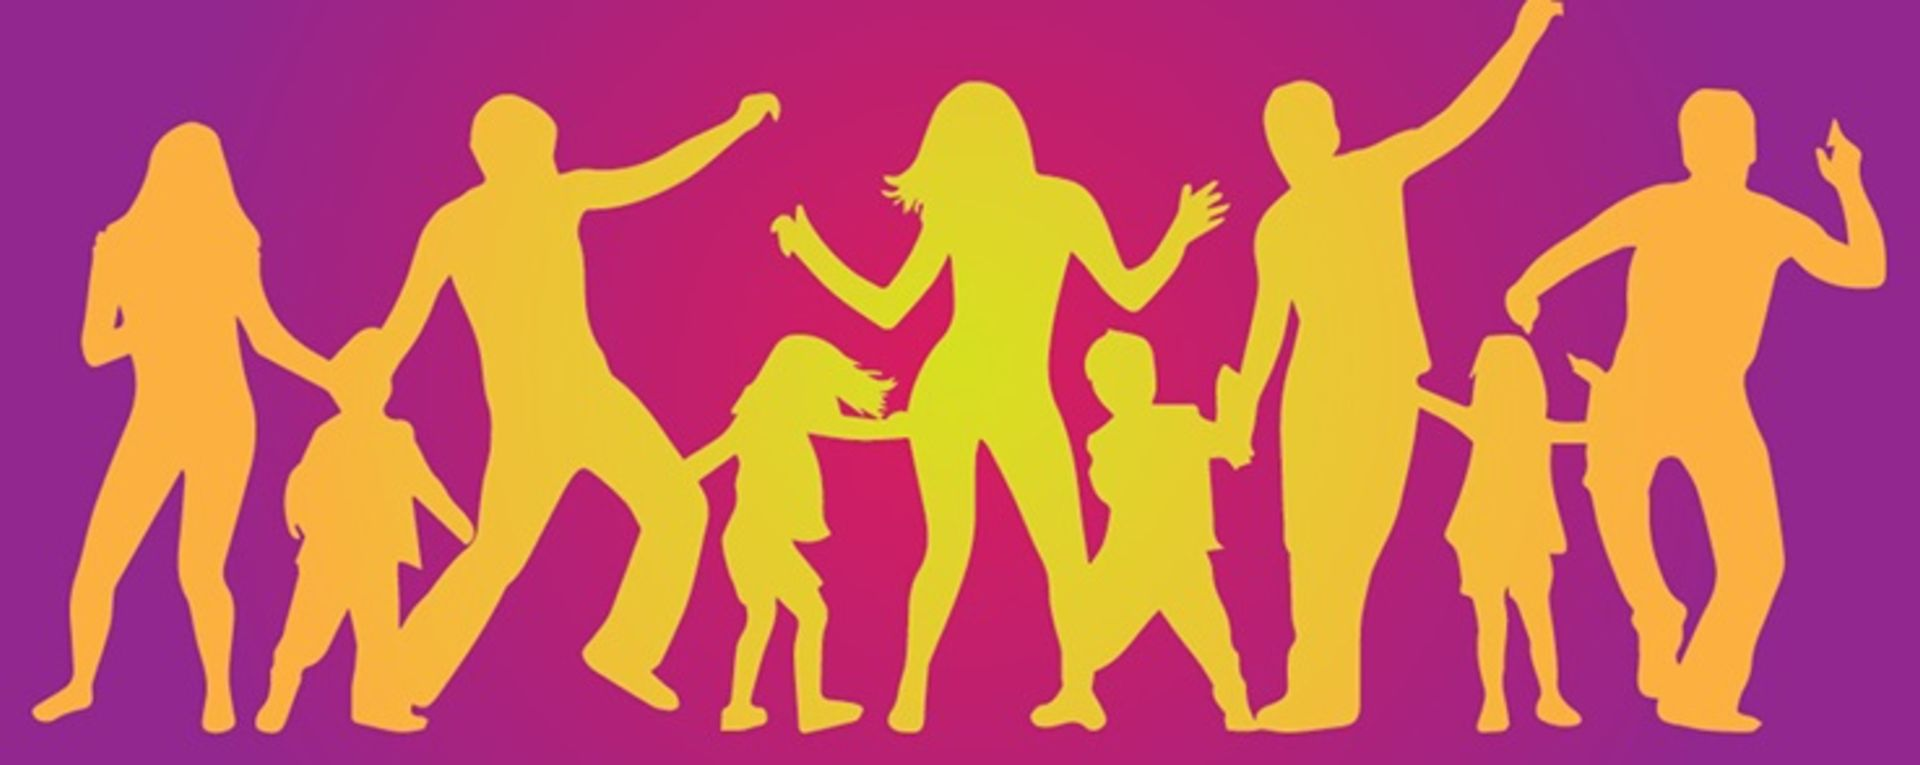 Dust off your dancin' shoes – it's time for the annual Family Dance Party